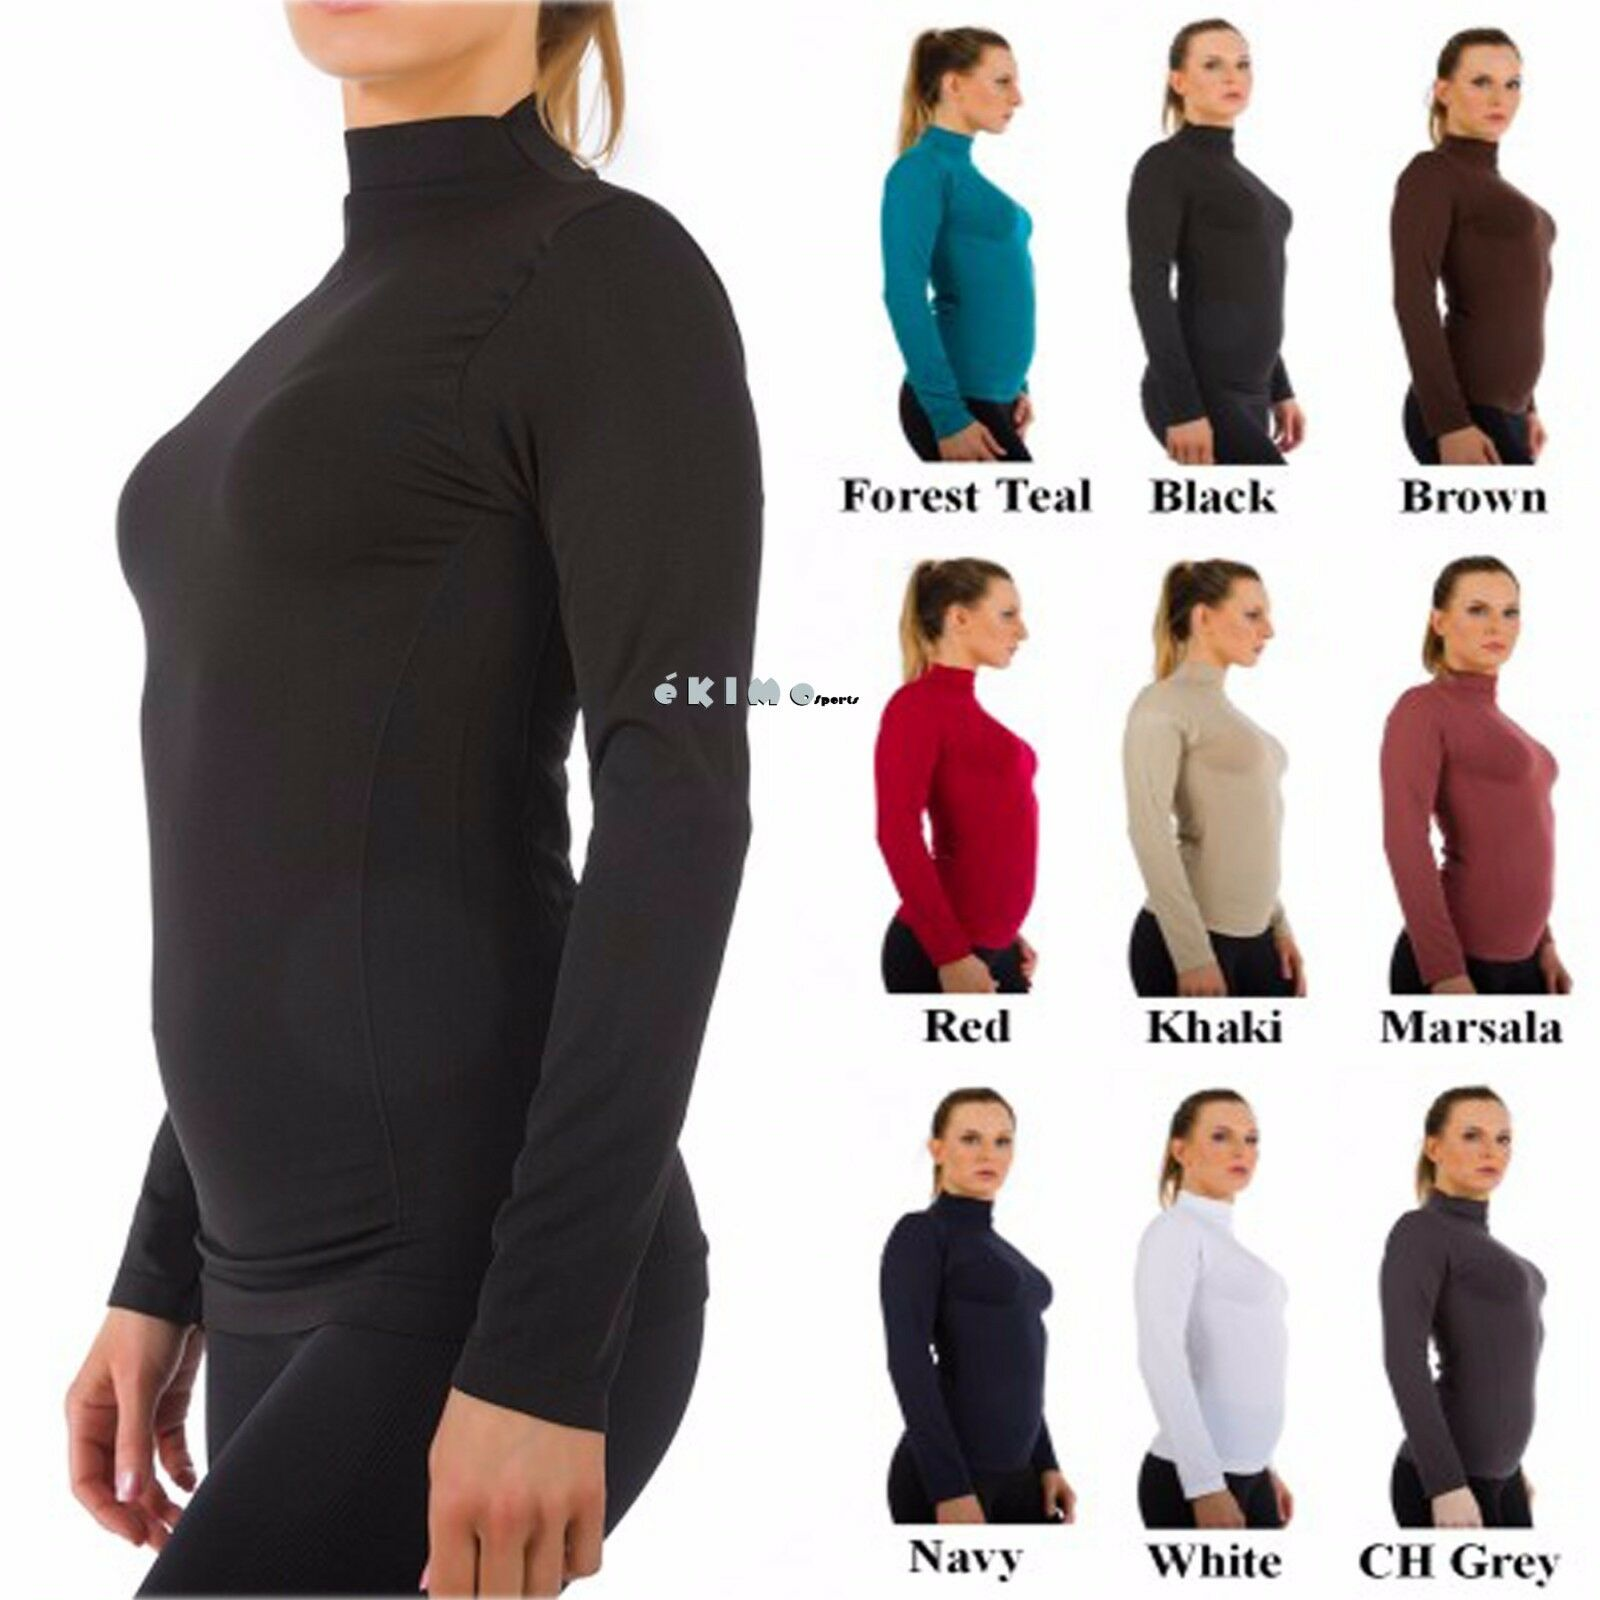 как выглядит Женская футболка Women Mock Neck Long Sleeve Shirt Turtleneck Top Stretch Slim Fit Tee Shirt фото